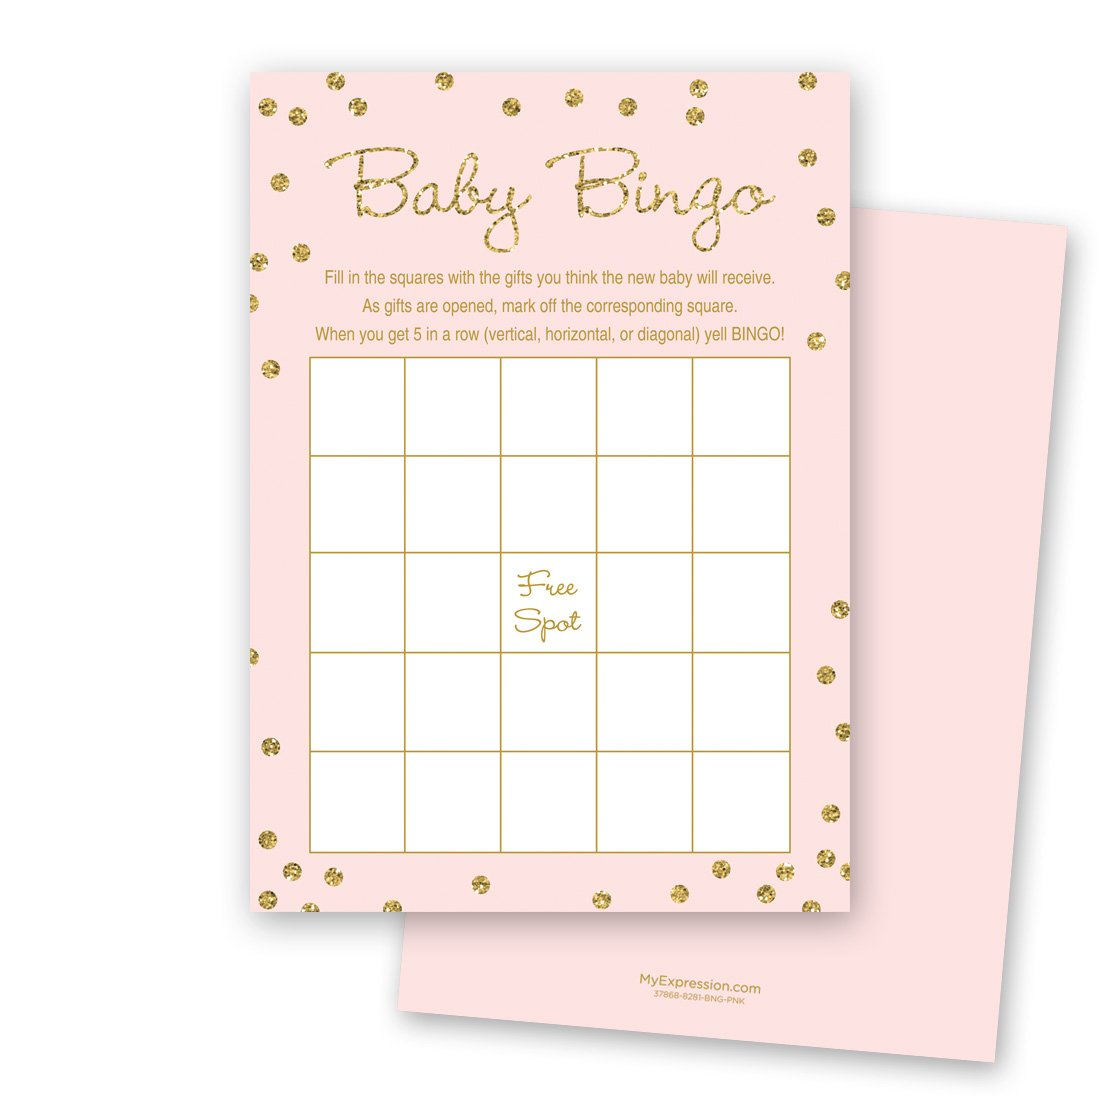 MyExpression.com 24 Cnt Gold Glitter Graphic Dots Pink Baby Bingo Cards